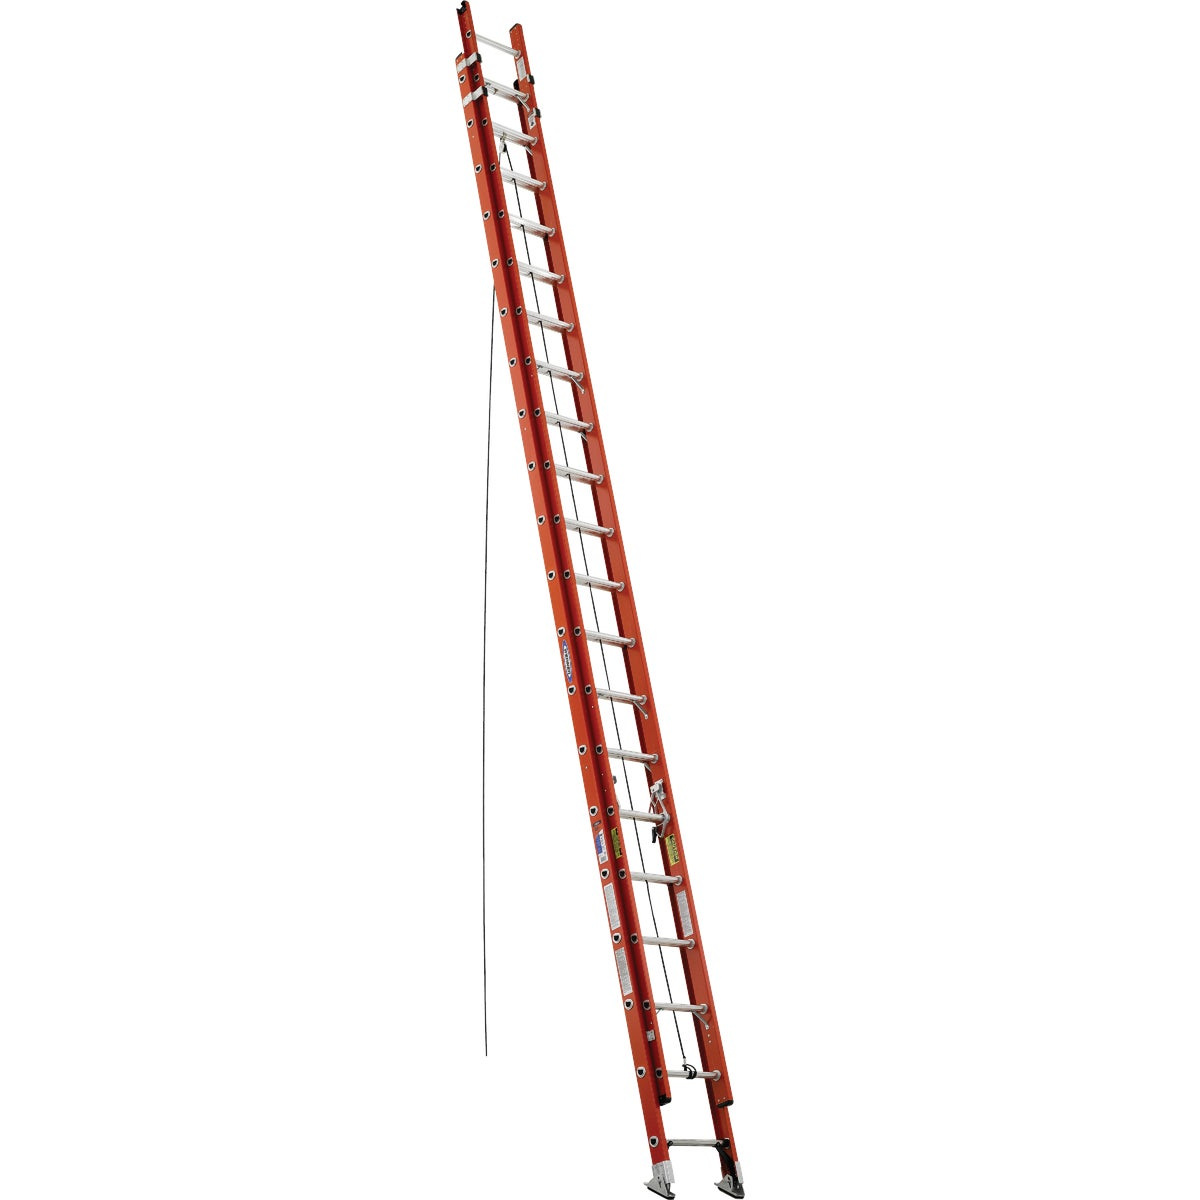 T-1A 40' FBGL EXT LADDER